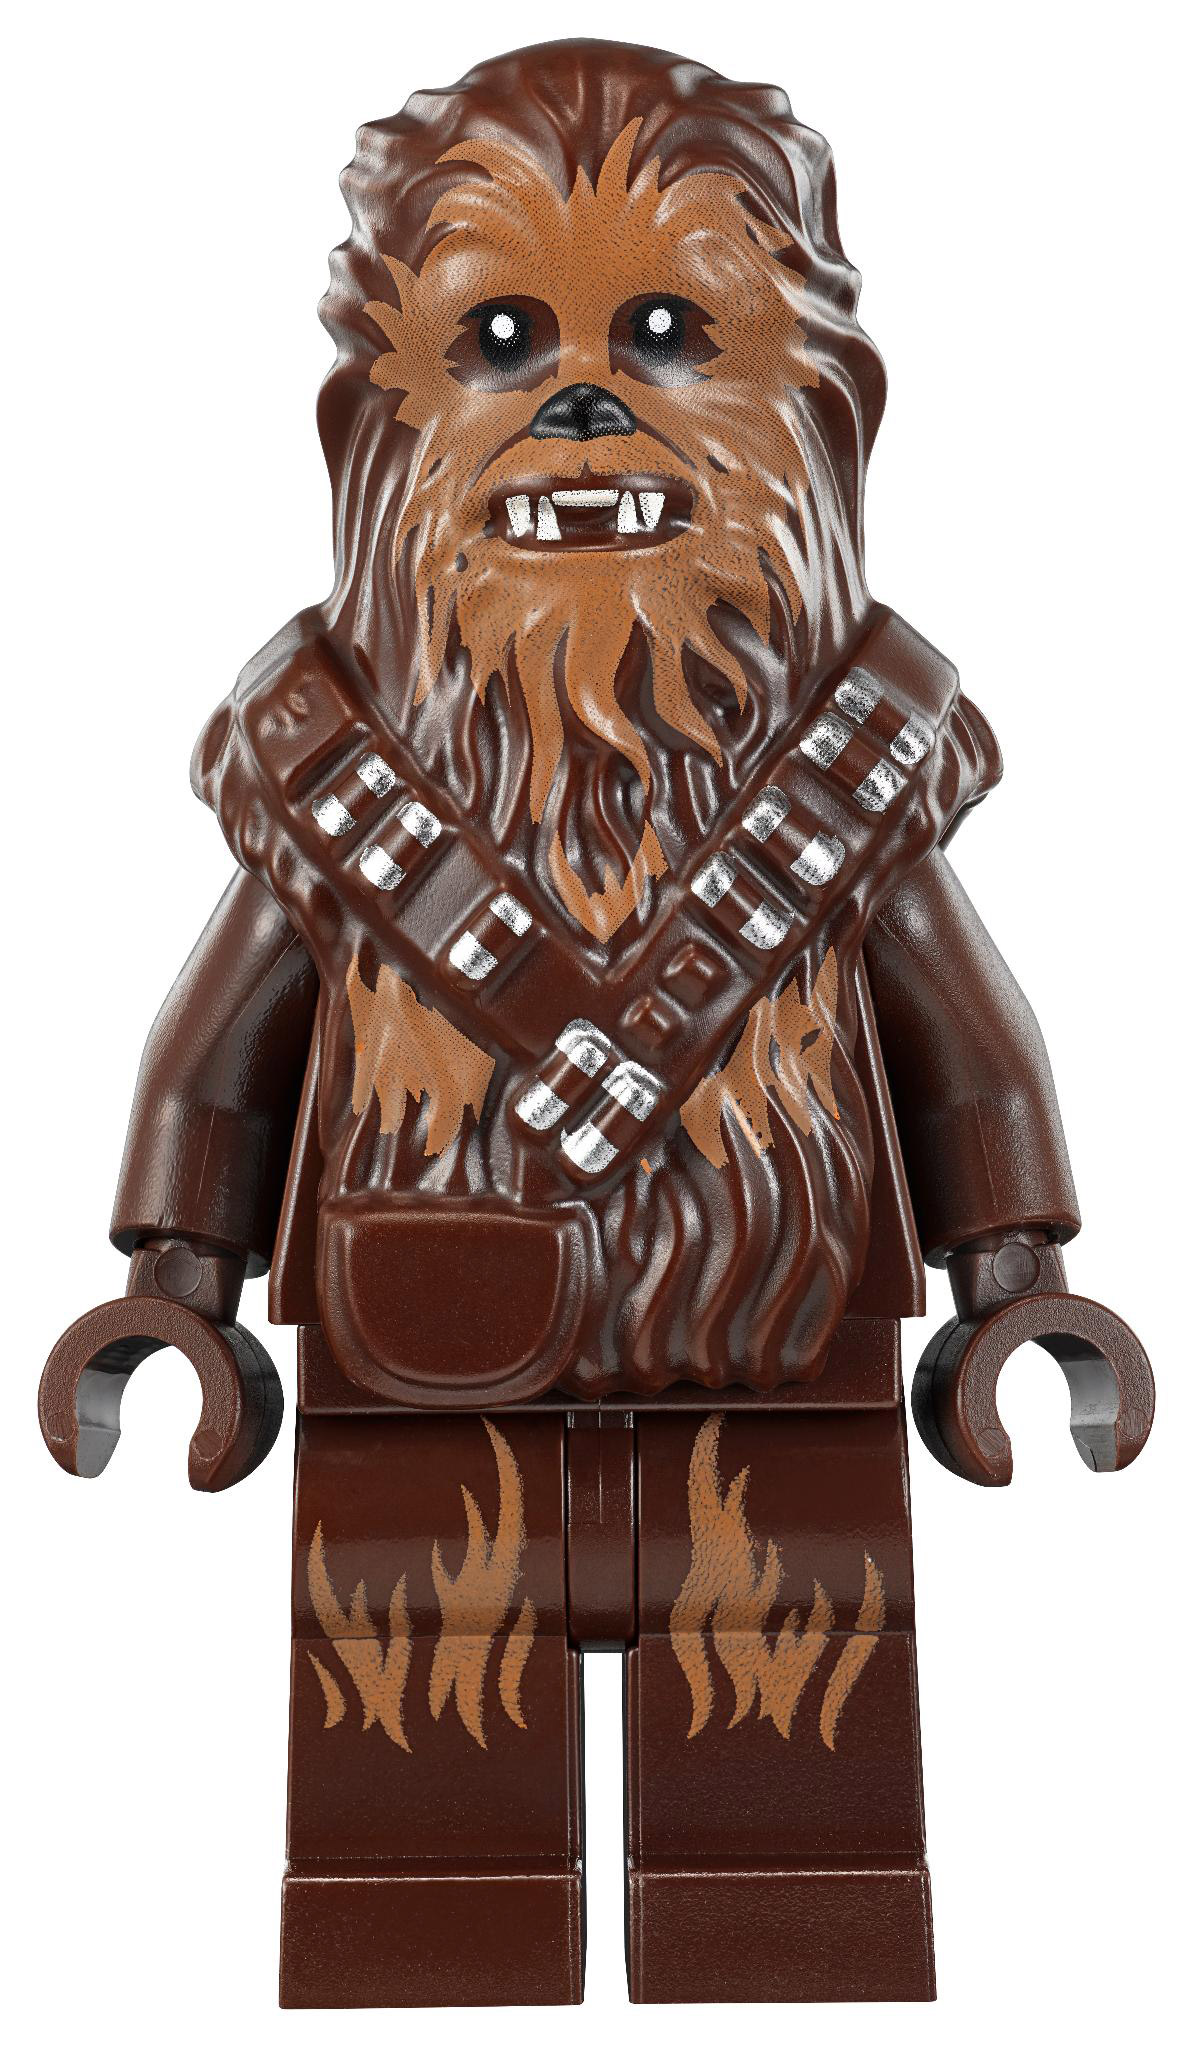 LEGO Star Wars 75212 Chewbacca